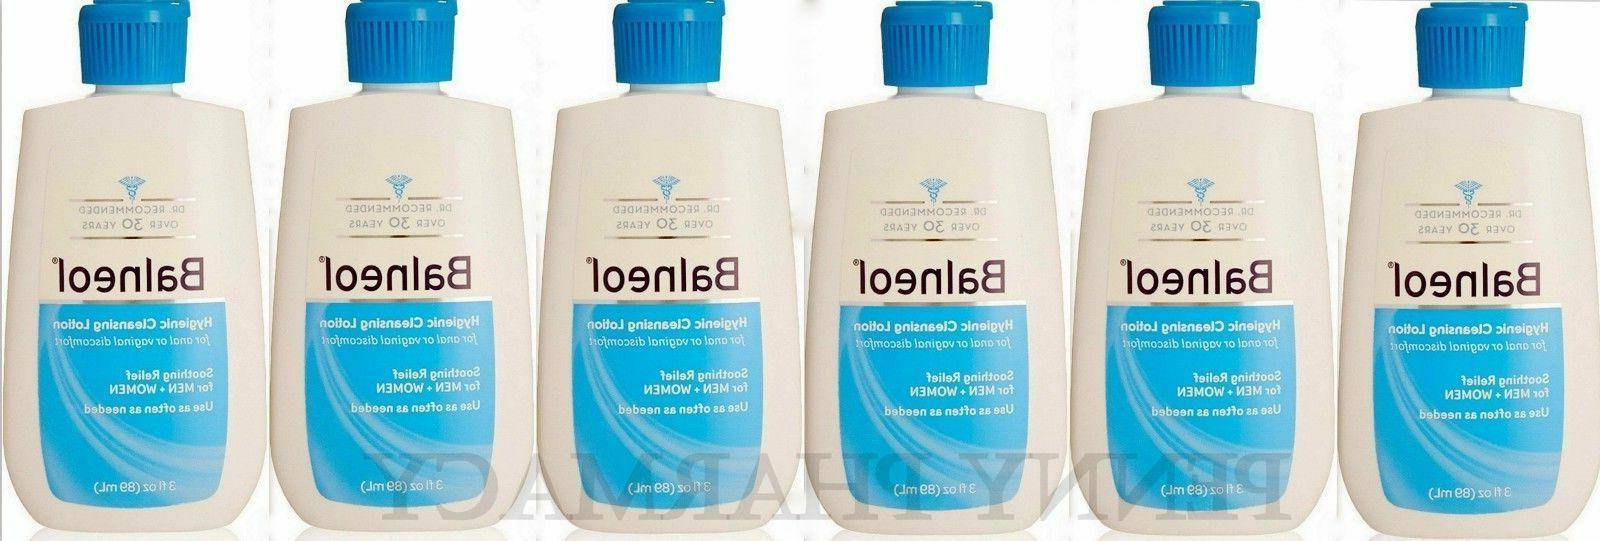 Balneol Hygienic Cleansing Lotion -- 3 fl oz